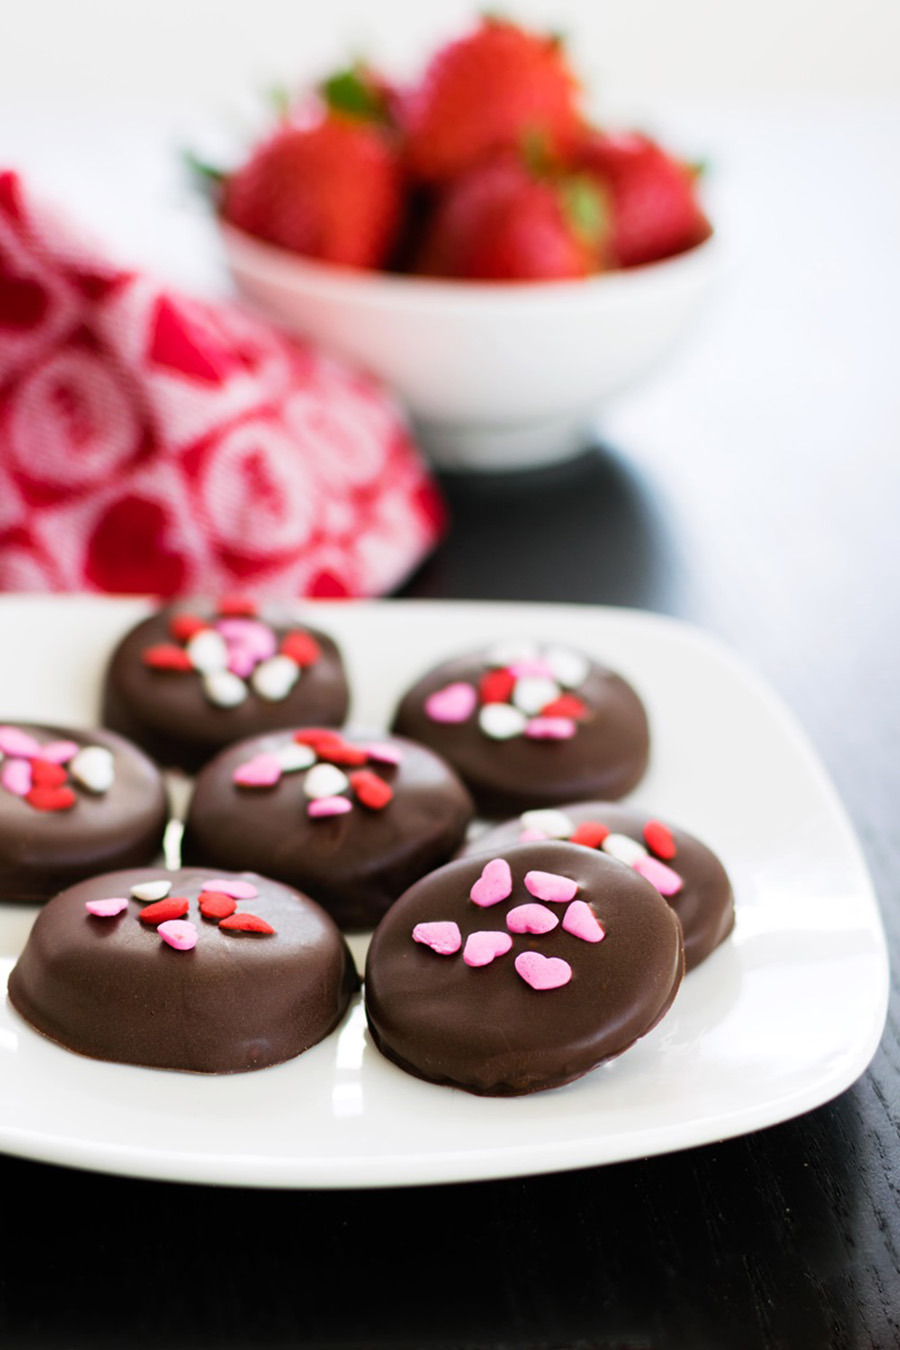 A white plate full of chocolate covered treats sitting on a wooden table with a pink and red napkin and a bowl of strawberries in the background.